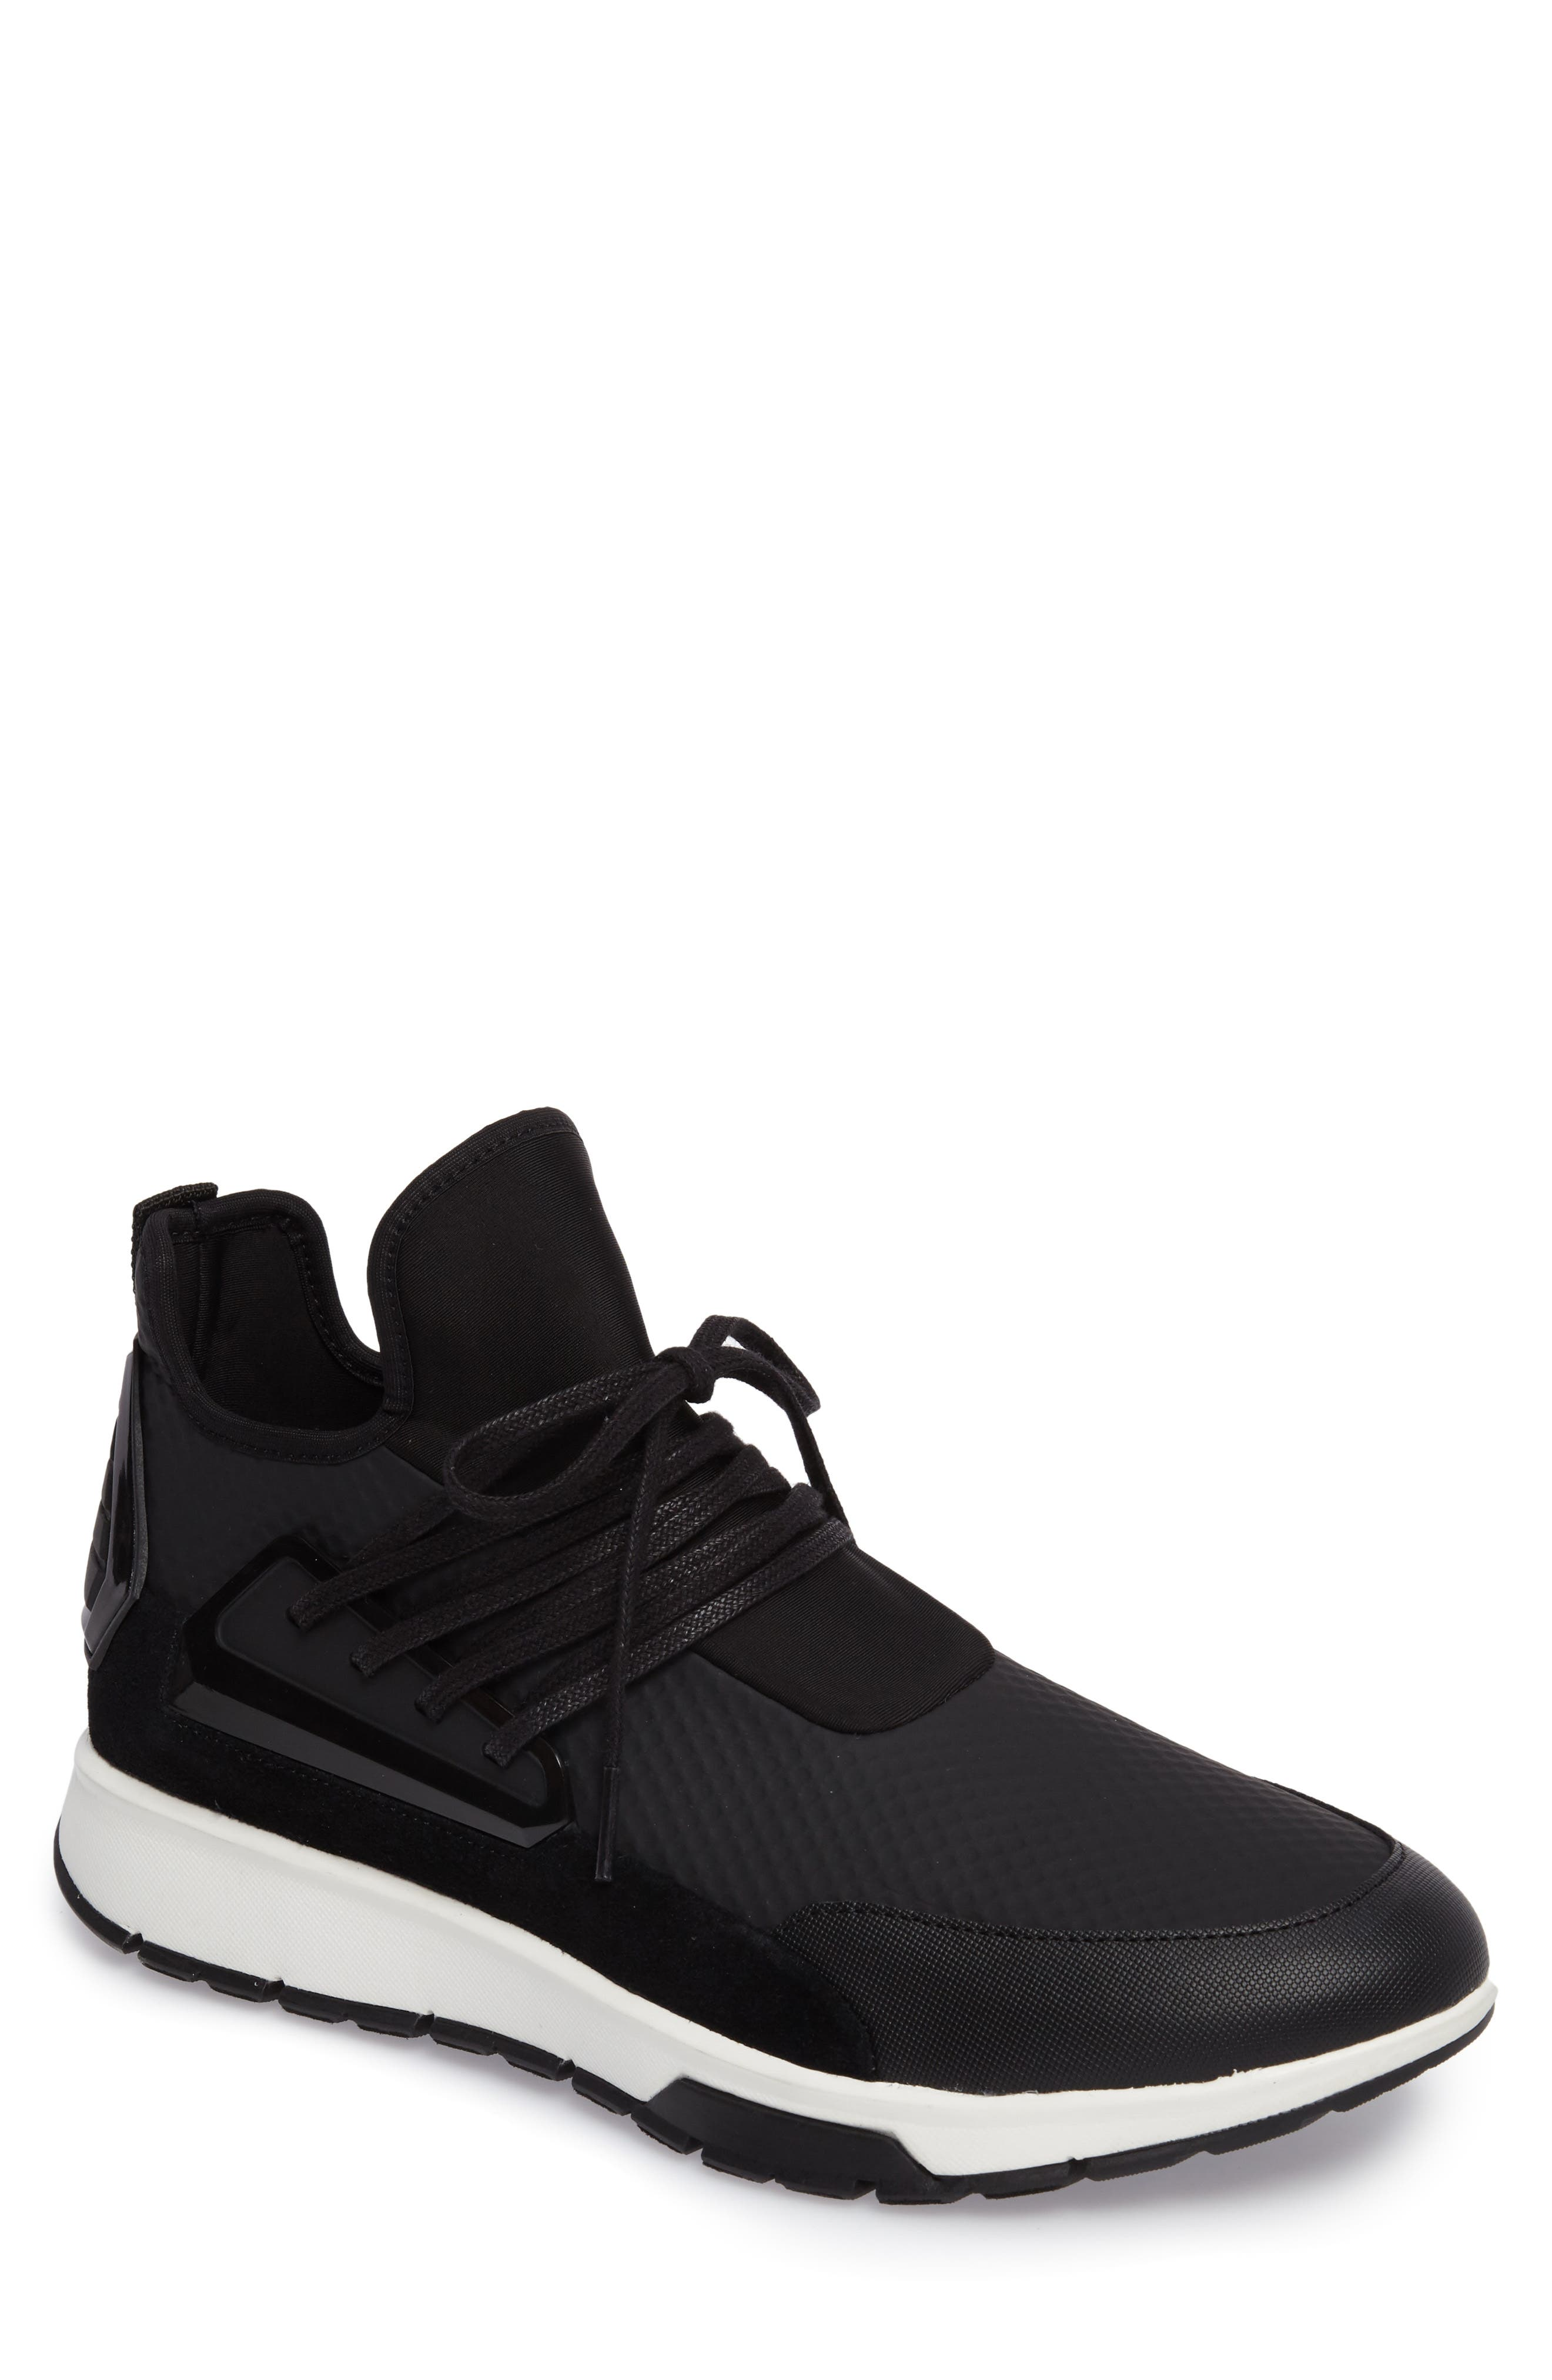 Keller City Sneaker,                         Main,                         color,